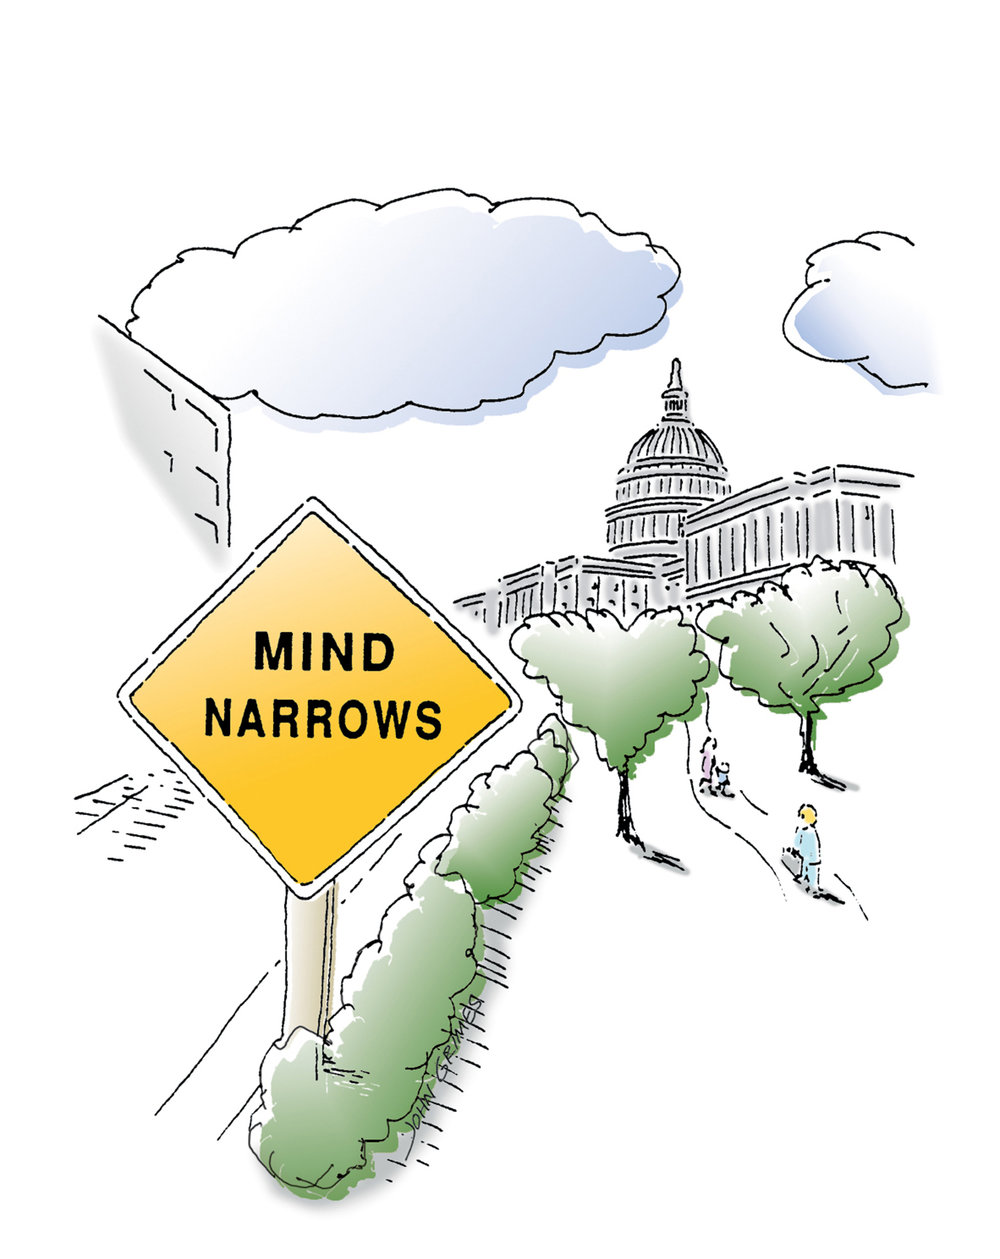 1539 mind narrows - ©john grimes.jpg